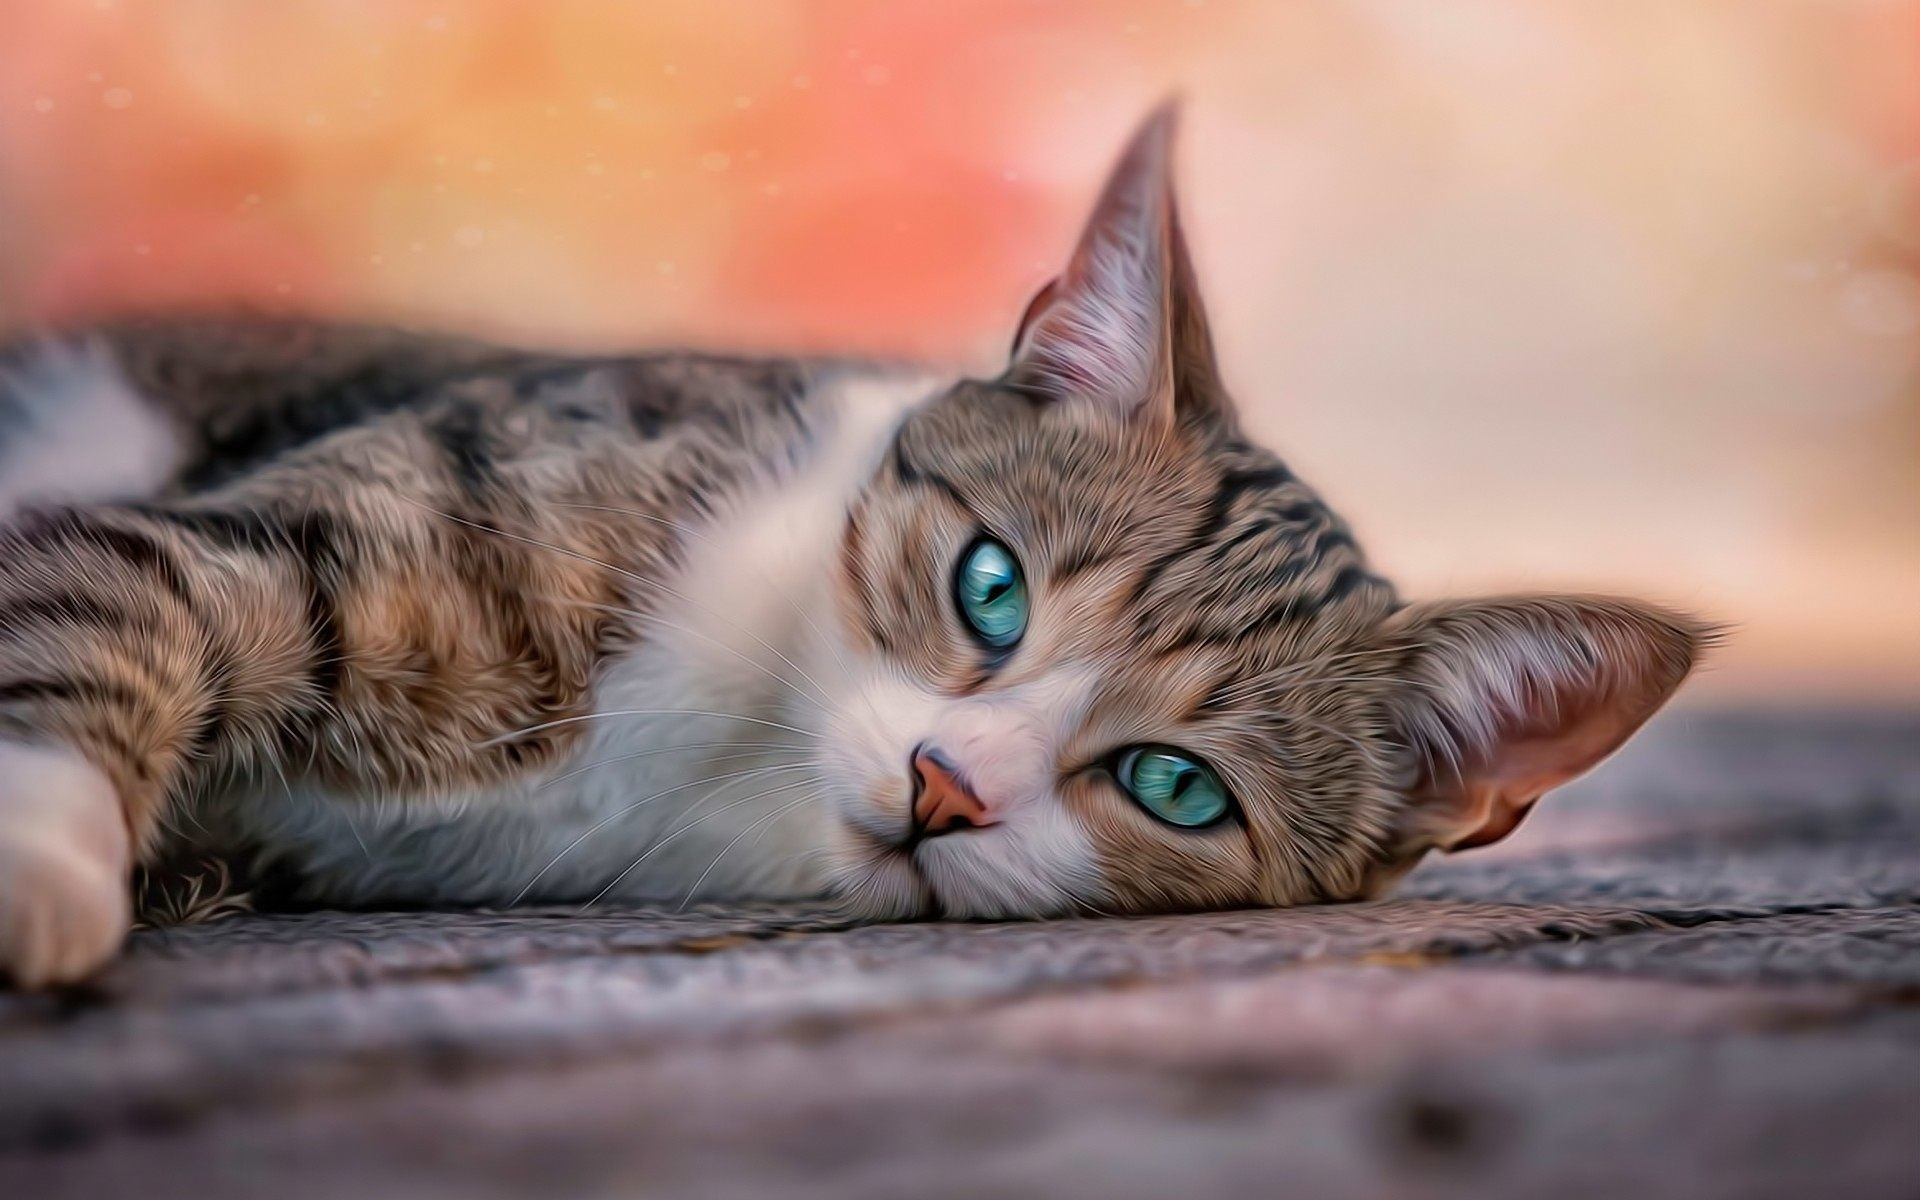 Hd cat wallpapers 64 images - Kitten wallpaper hd ...